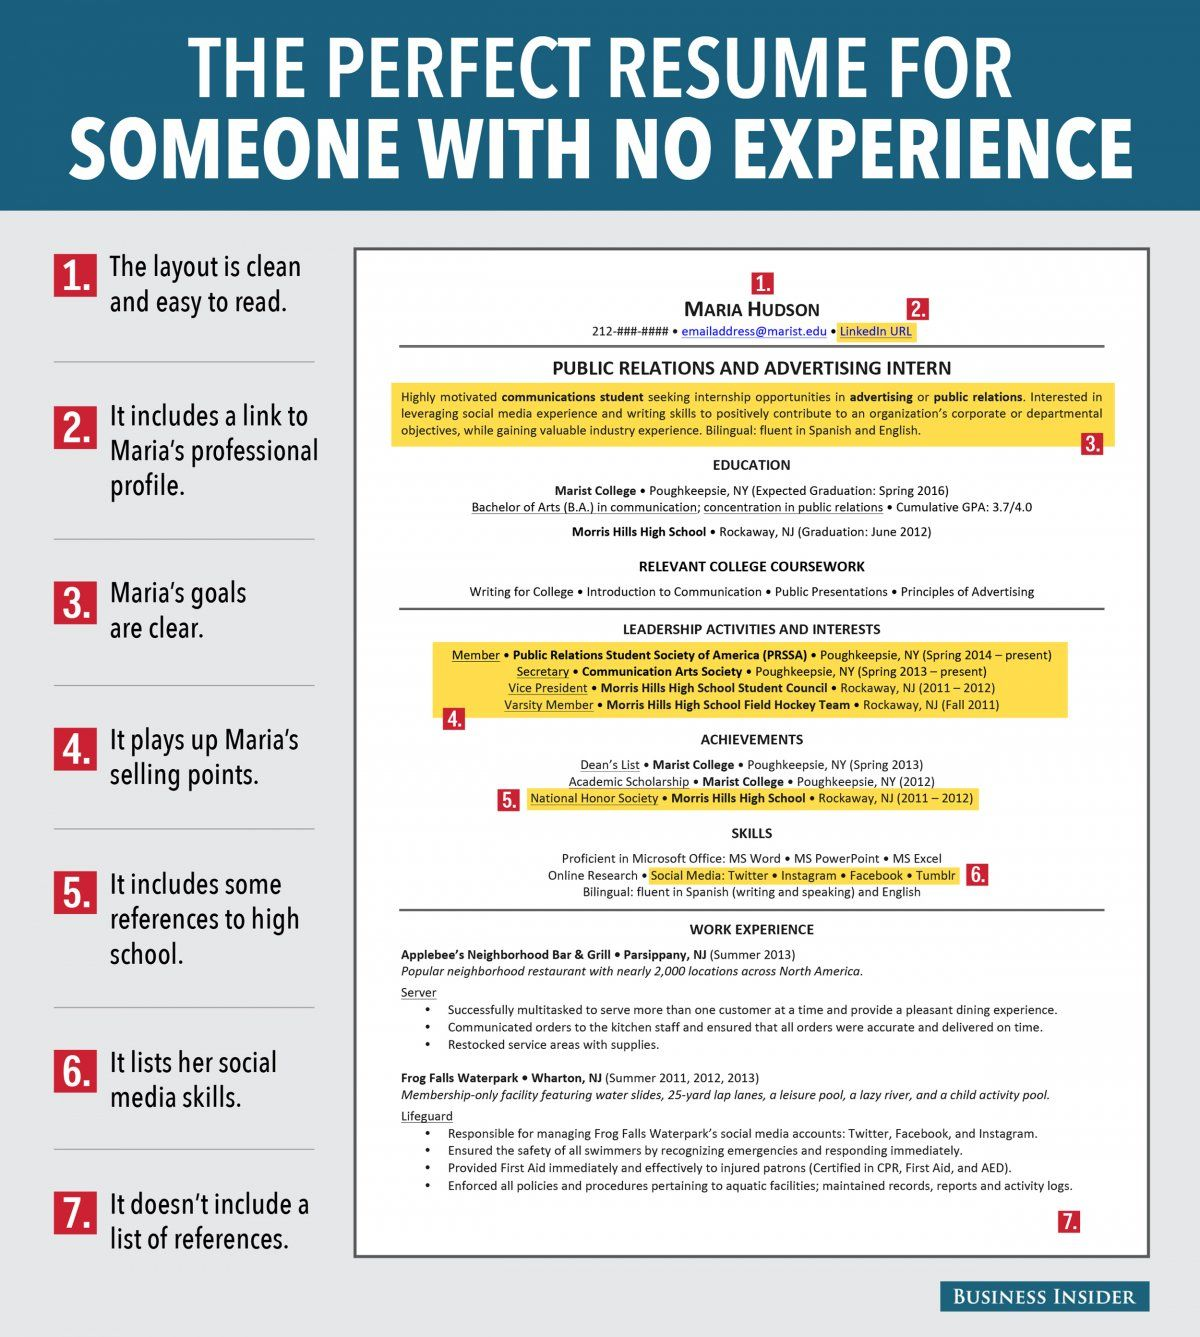 7 reasons this is an excellent resume for someone no jadelyn chronic illness cat titleknown hueva york la bufadora businessinsider infographic 7 reasons this is an excellent resume for